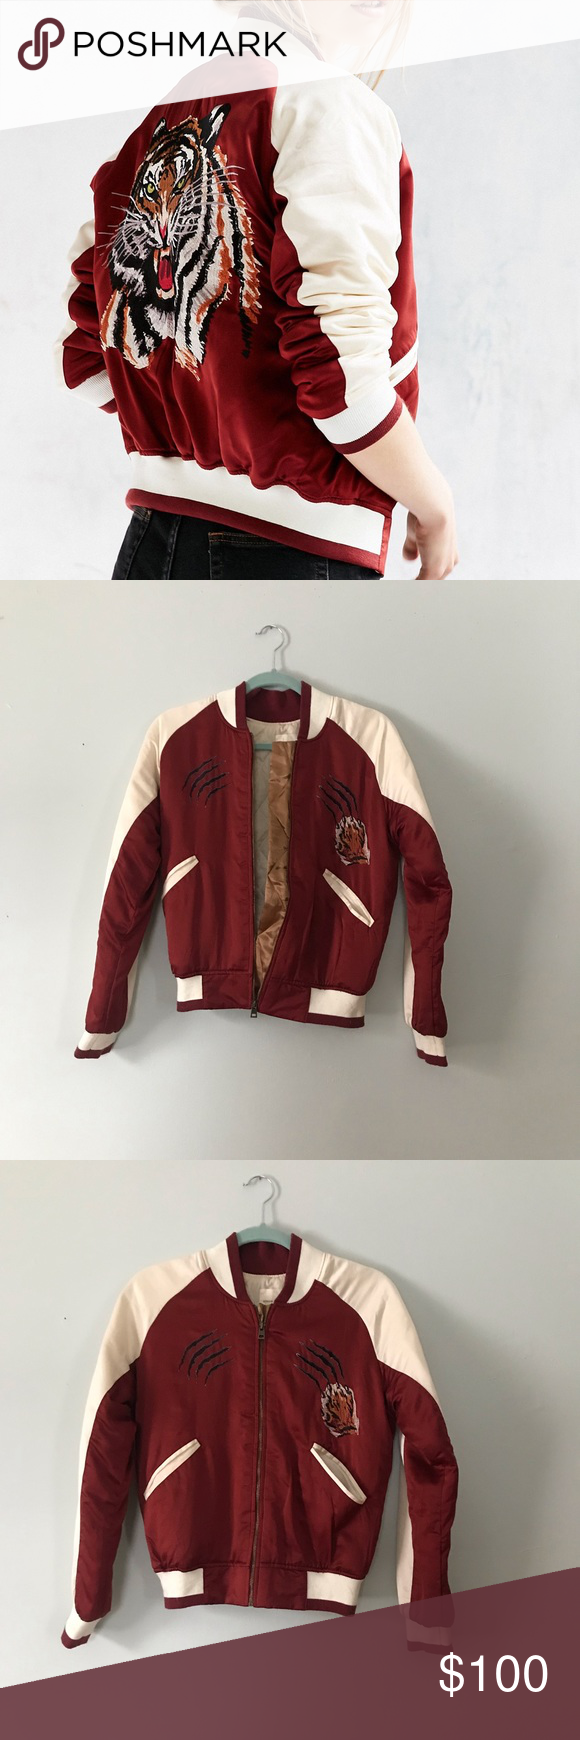 Urban Outfitters Satin Tiger Bomber Jacket Urban Outfitters Jacket Urban Outfitters Bomber Jacket